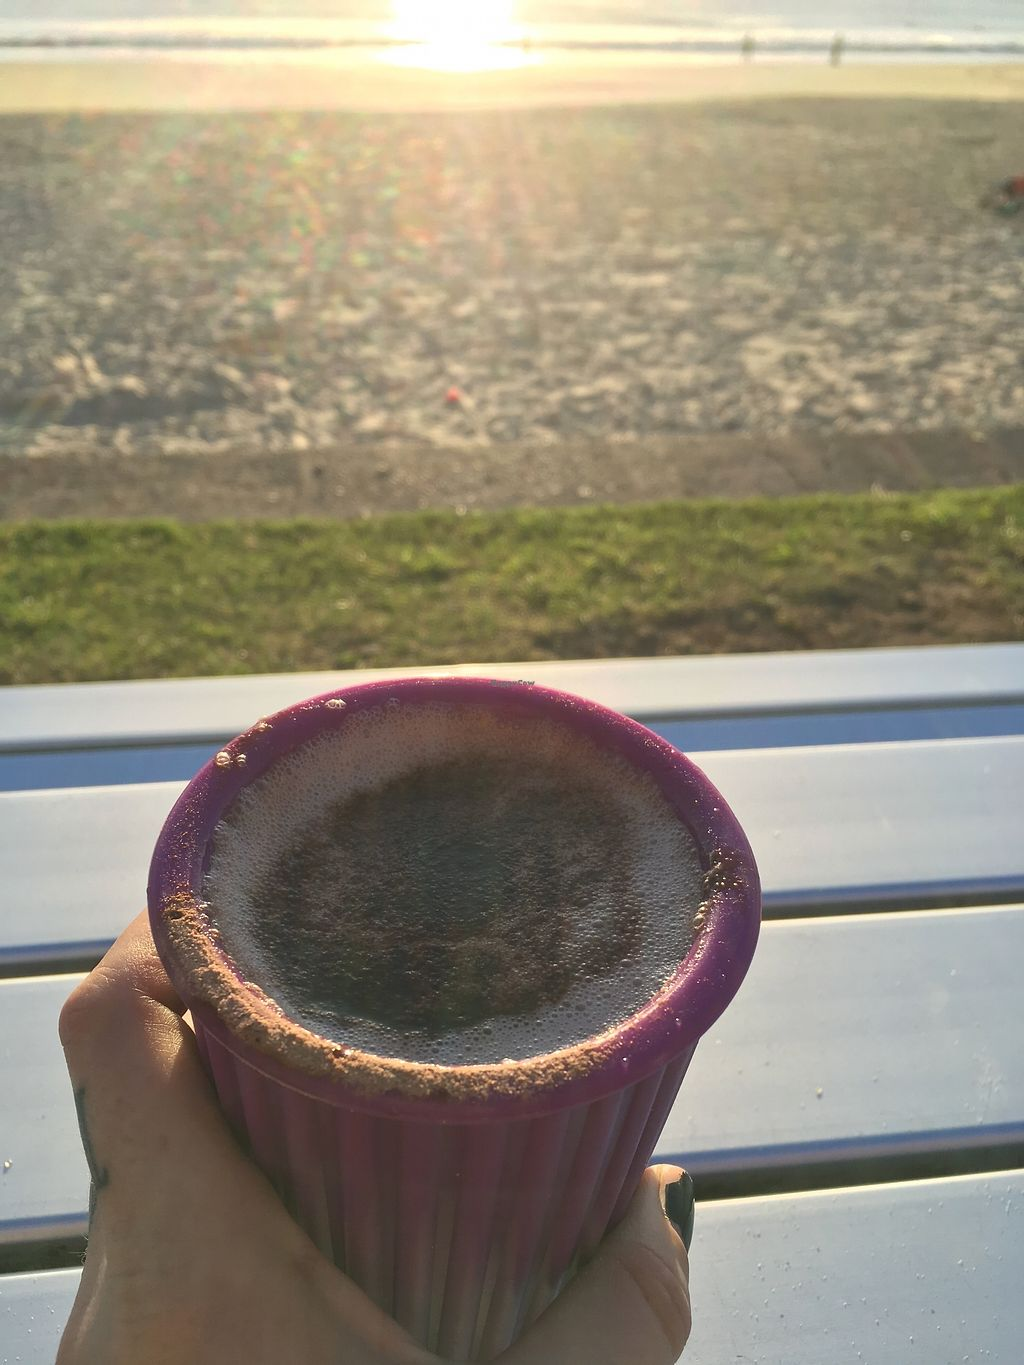 """Photo of Ocean Shepherd Espresso Bar  by <a href=""""/members/profile/jojoinbrighton"""">jojoinbrighton</a> <br/>Hot chocolate in my own mug <br/> August 6, 2017  - <a href='/contact/abuse/image/85217/289677'>Report</a>"""